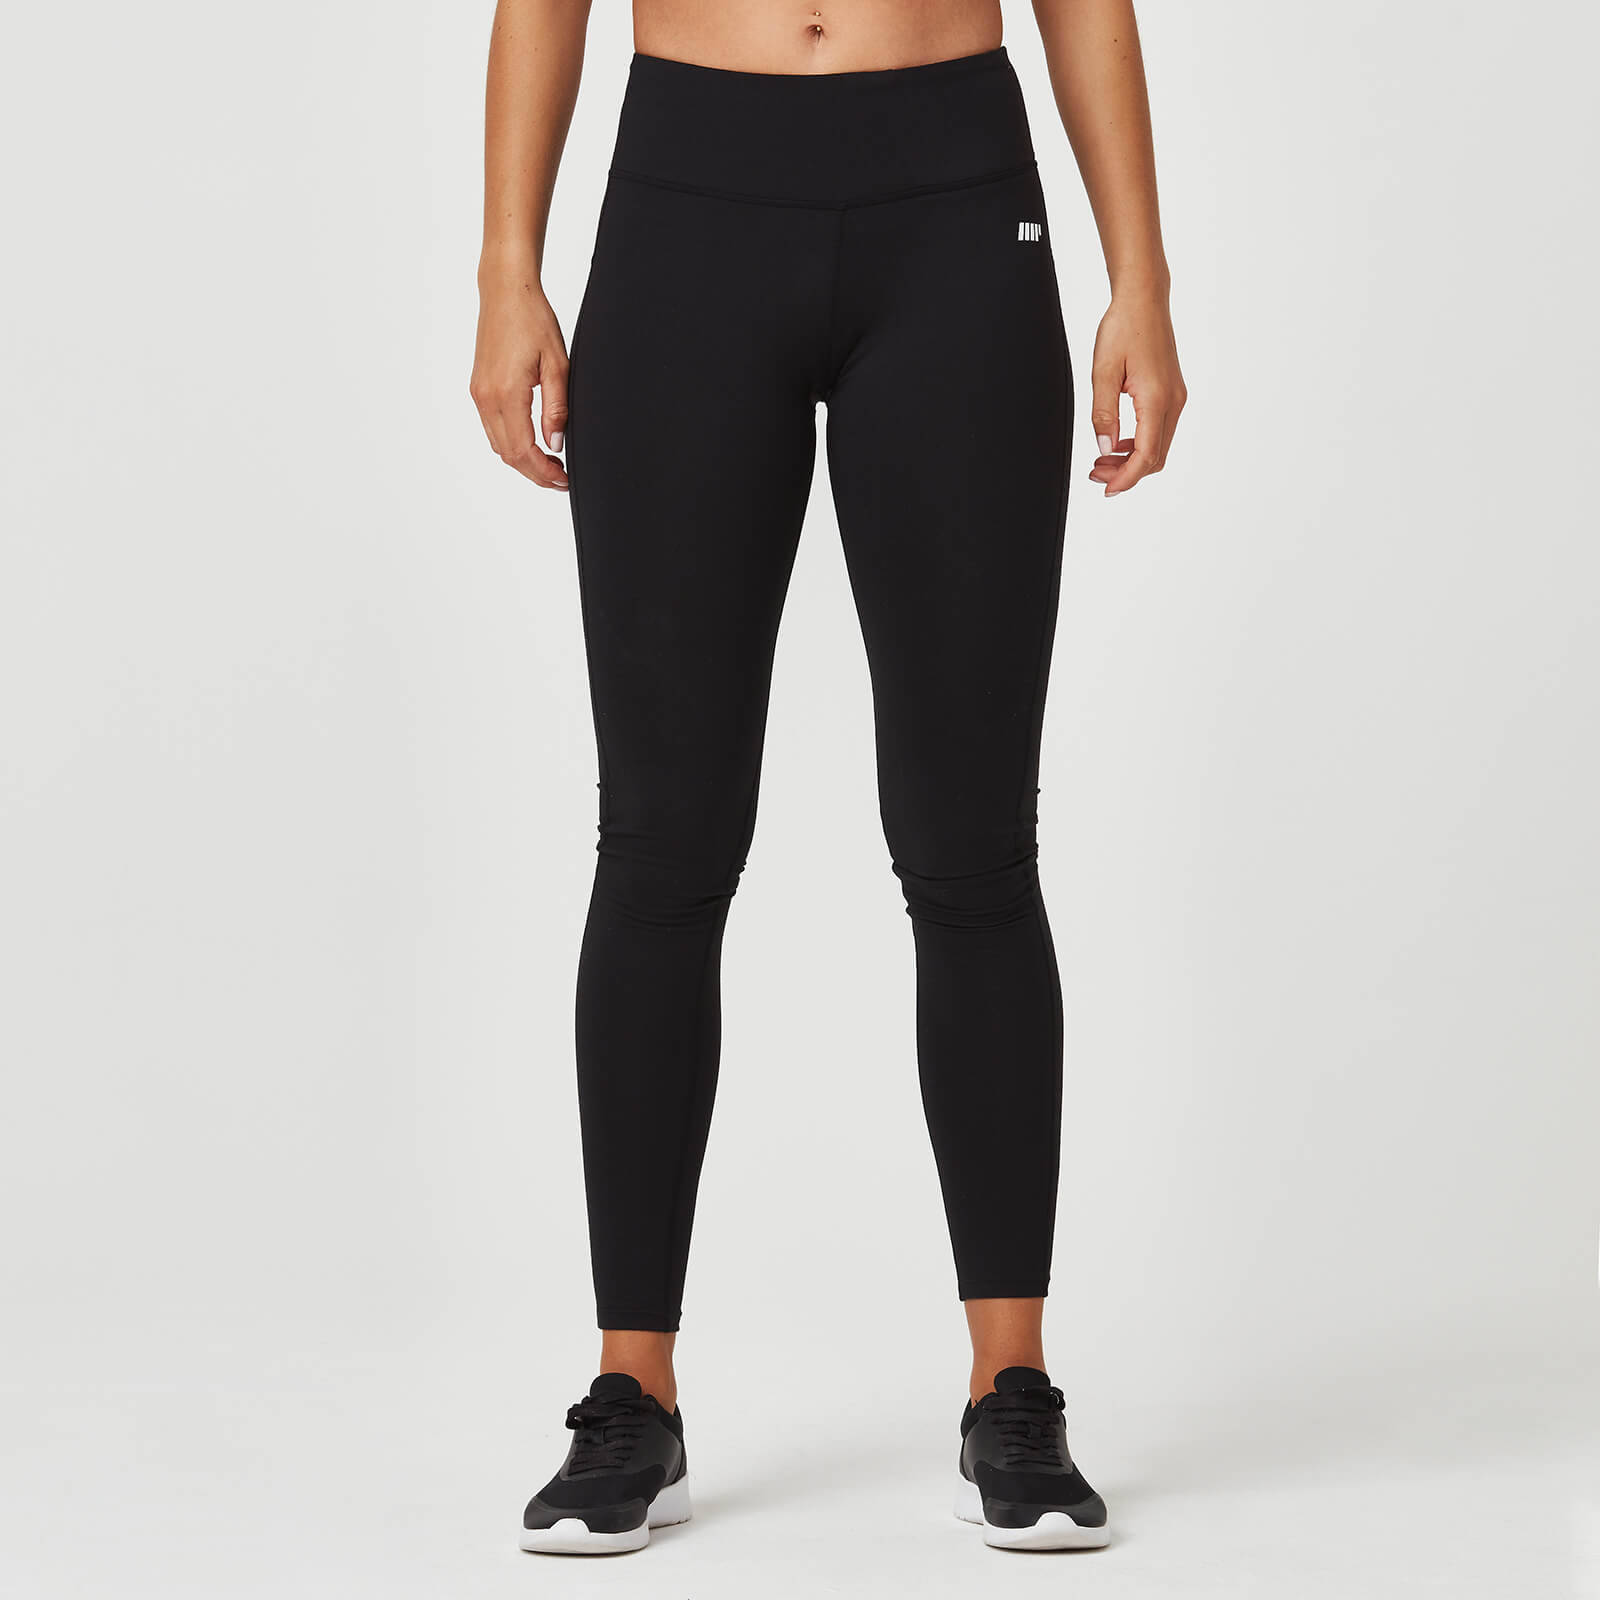 Myprotein Classic Heartbeat Full Length Leggings - Black - XS